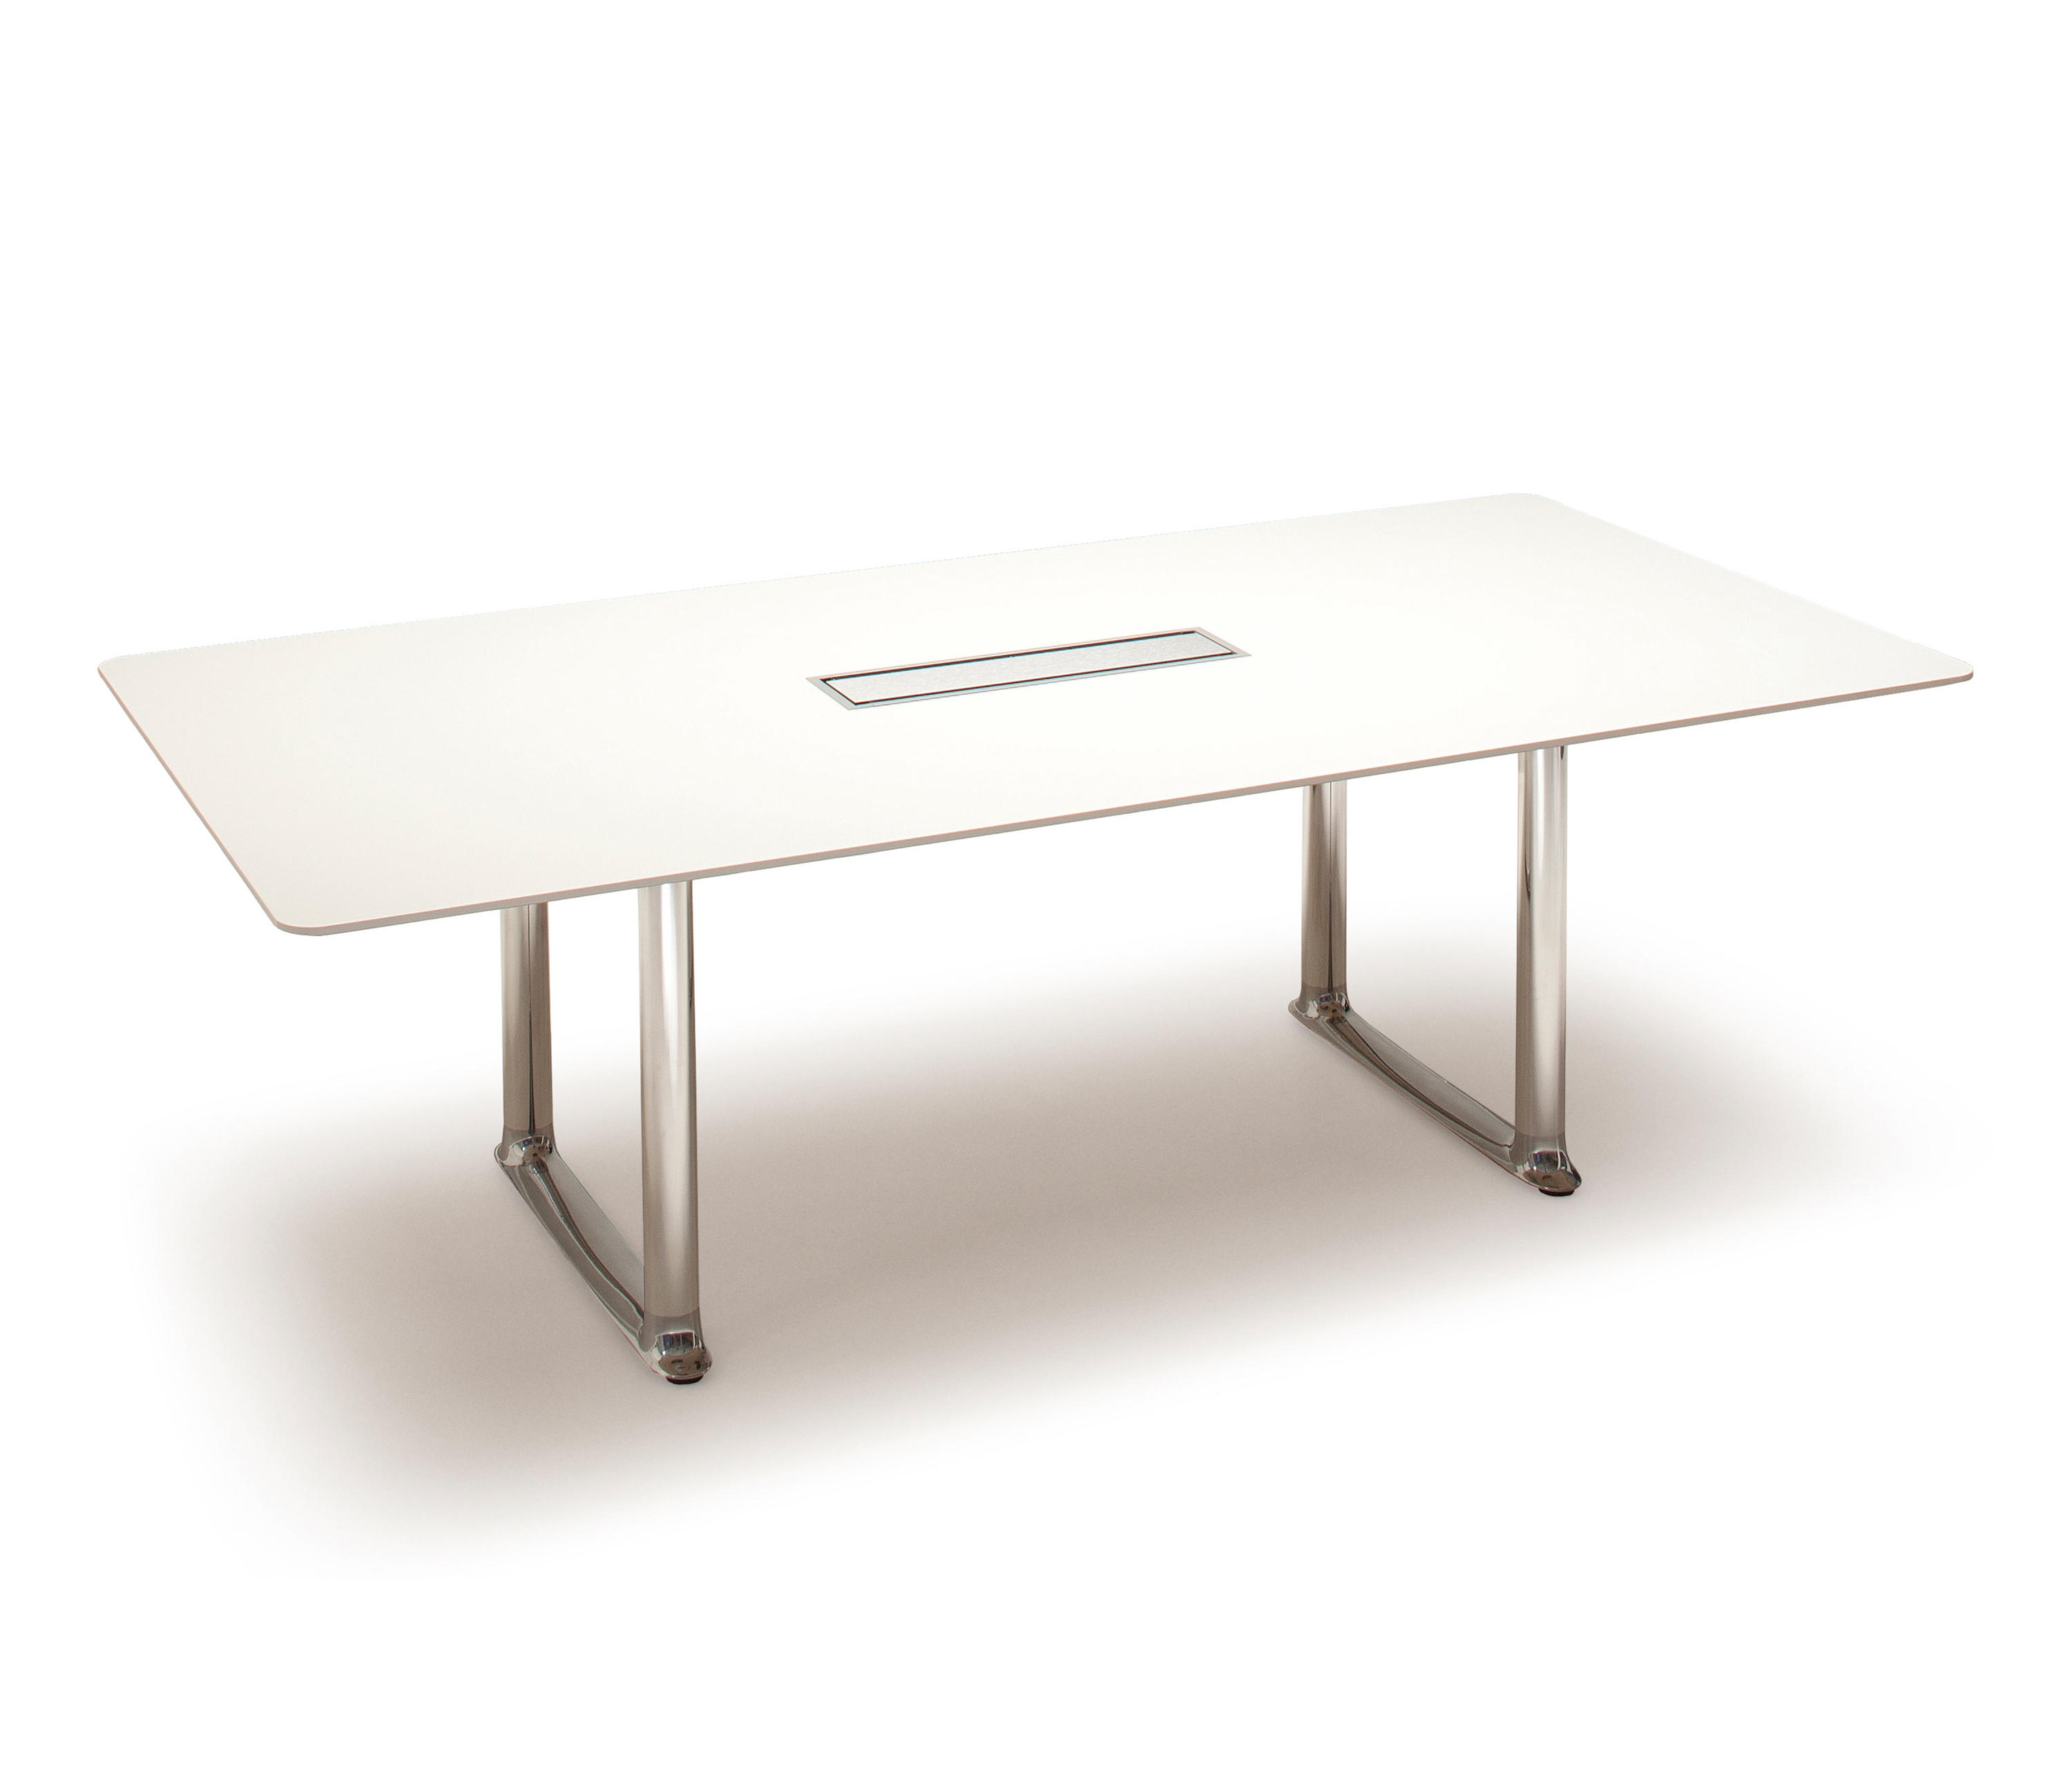 CONTRACT TABLES MULTIMEDIA TABLES High Quality Designer CONTRACT - Multimedia conference table